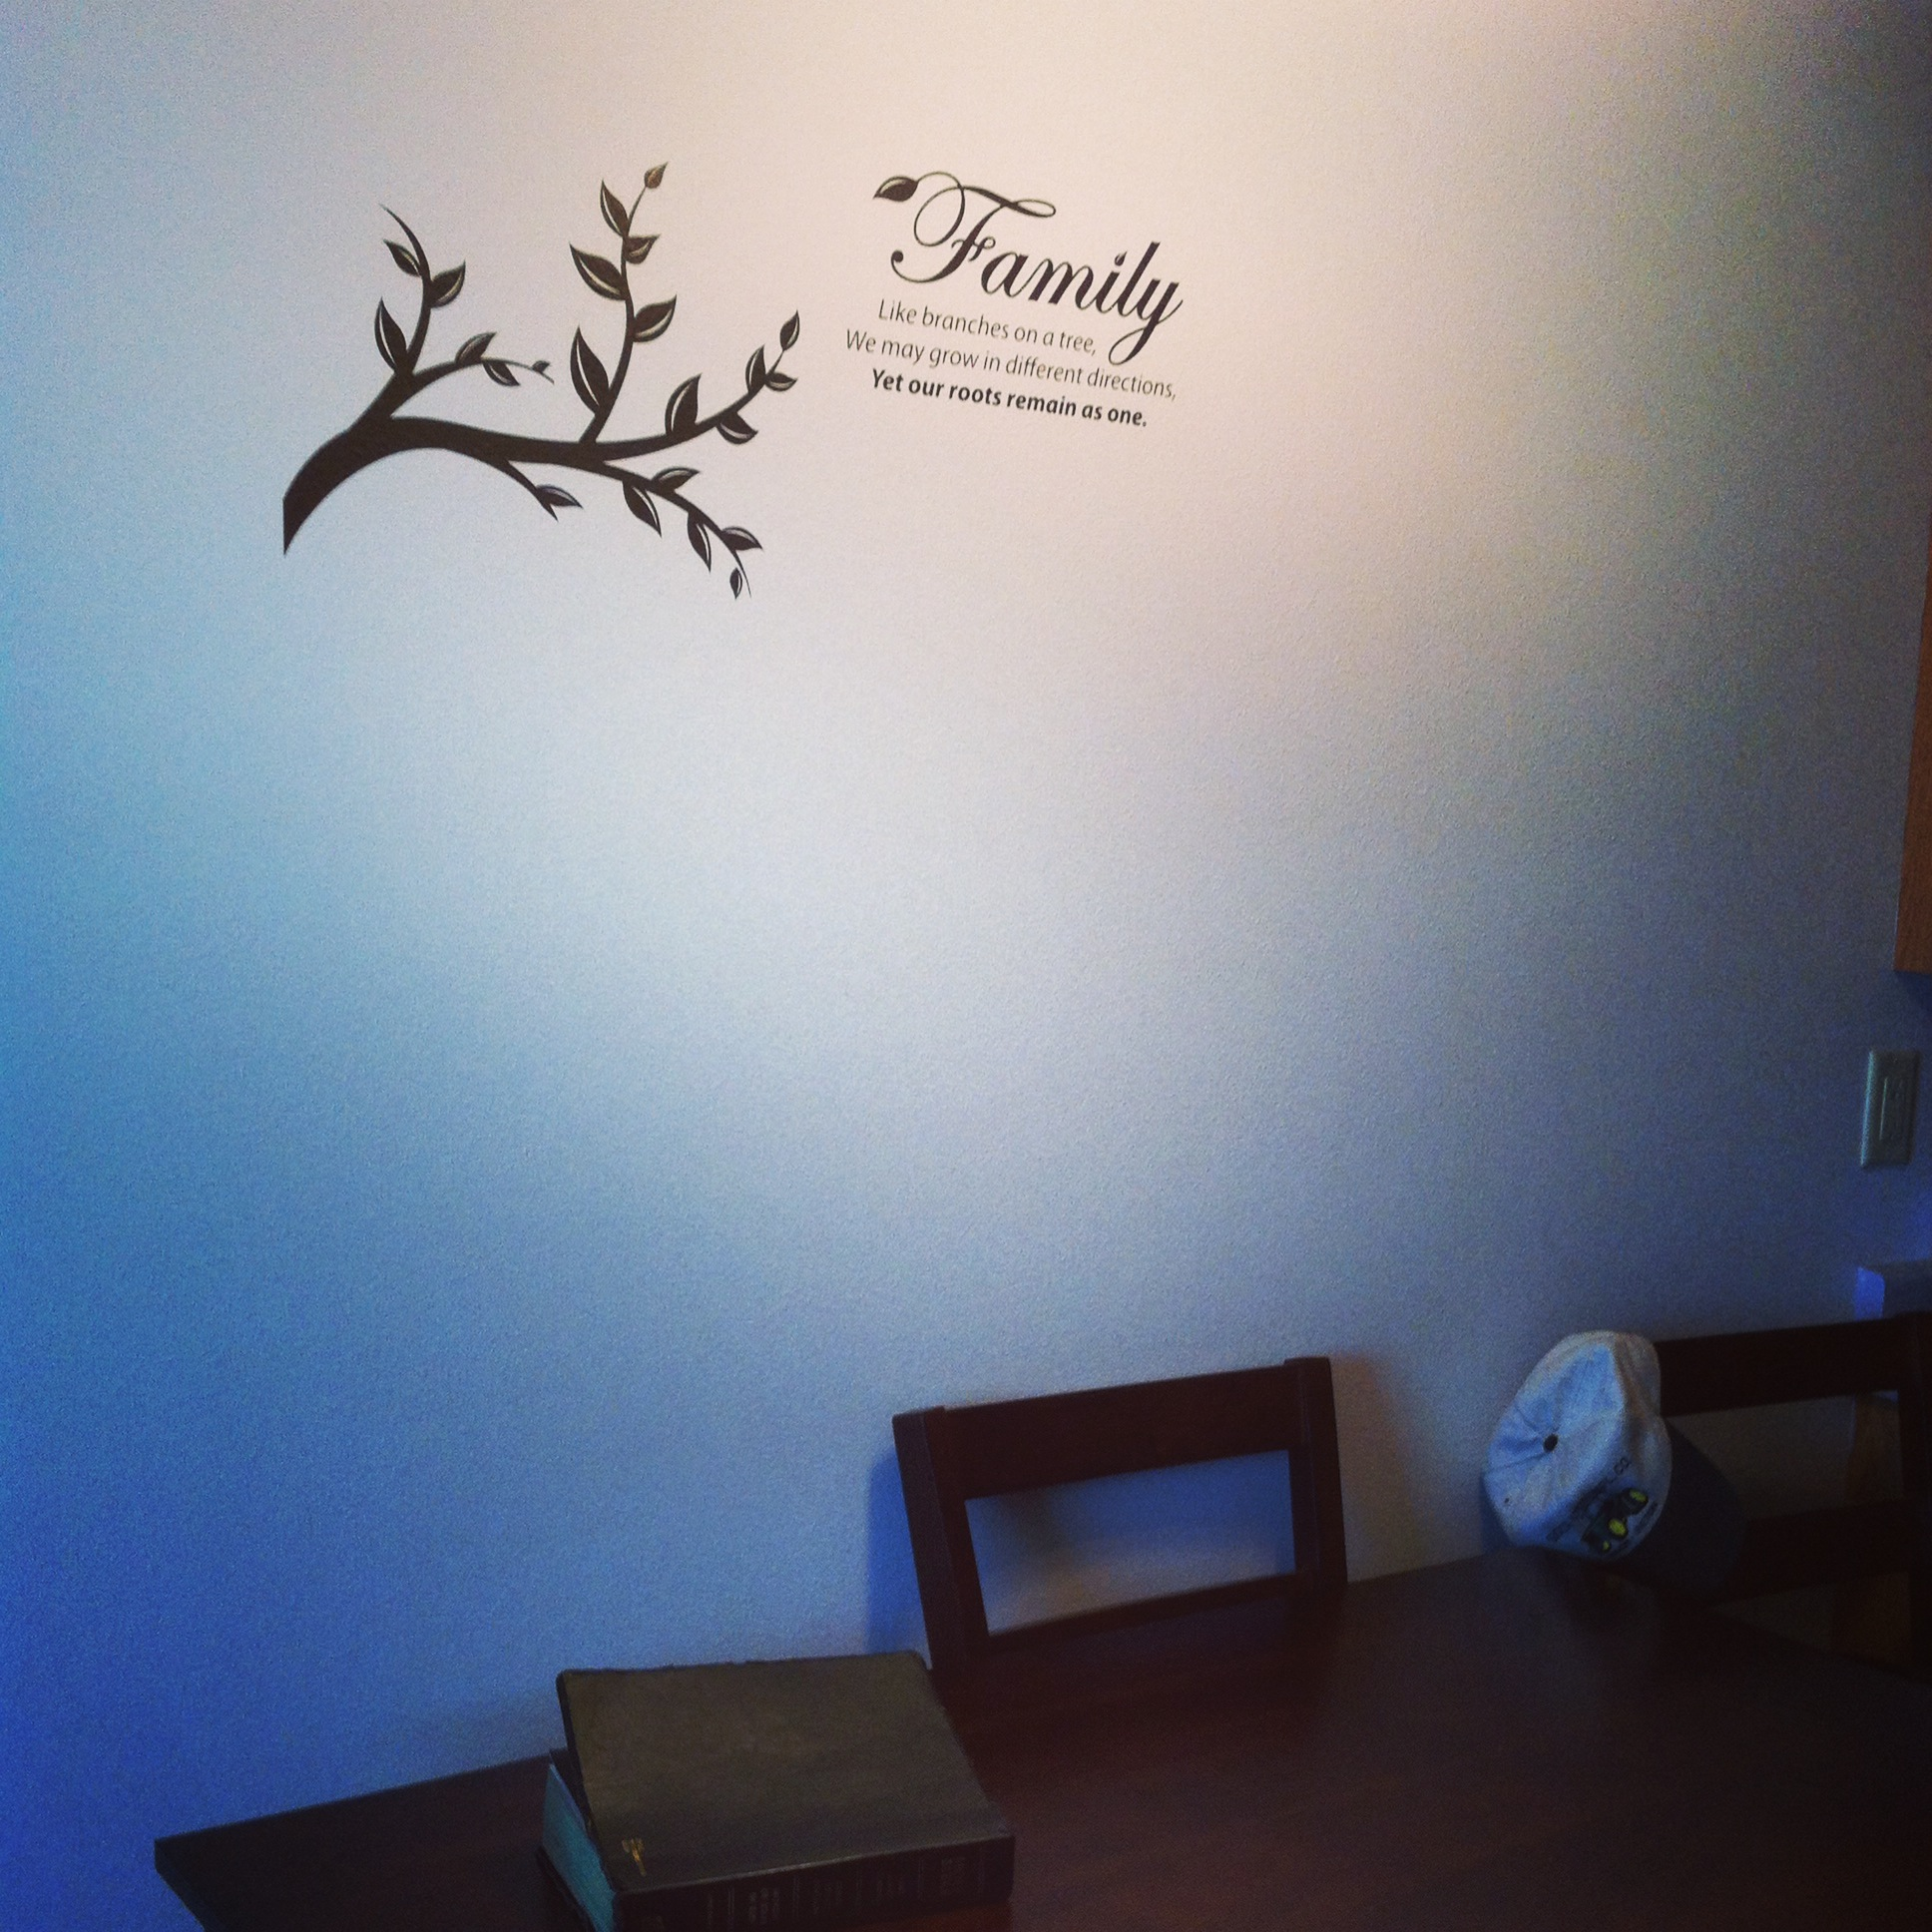 3 tips for finding the right space for a wall decal wall decor for this cheetah decal we had about 6 and 1 2 feet of open space available to us the cheetah is 58 inches wide and 20 inches high this wall decal design